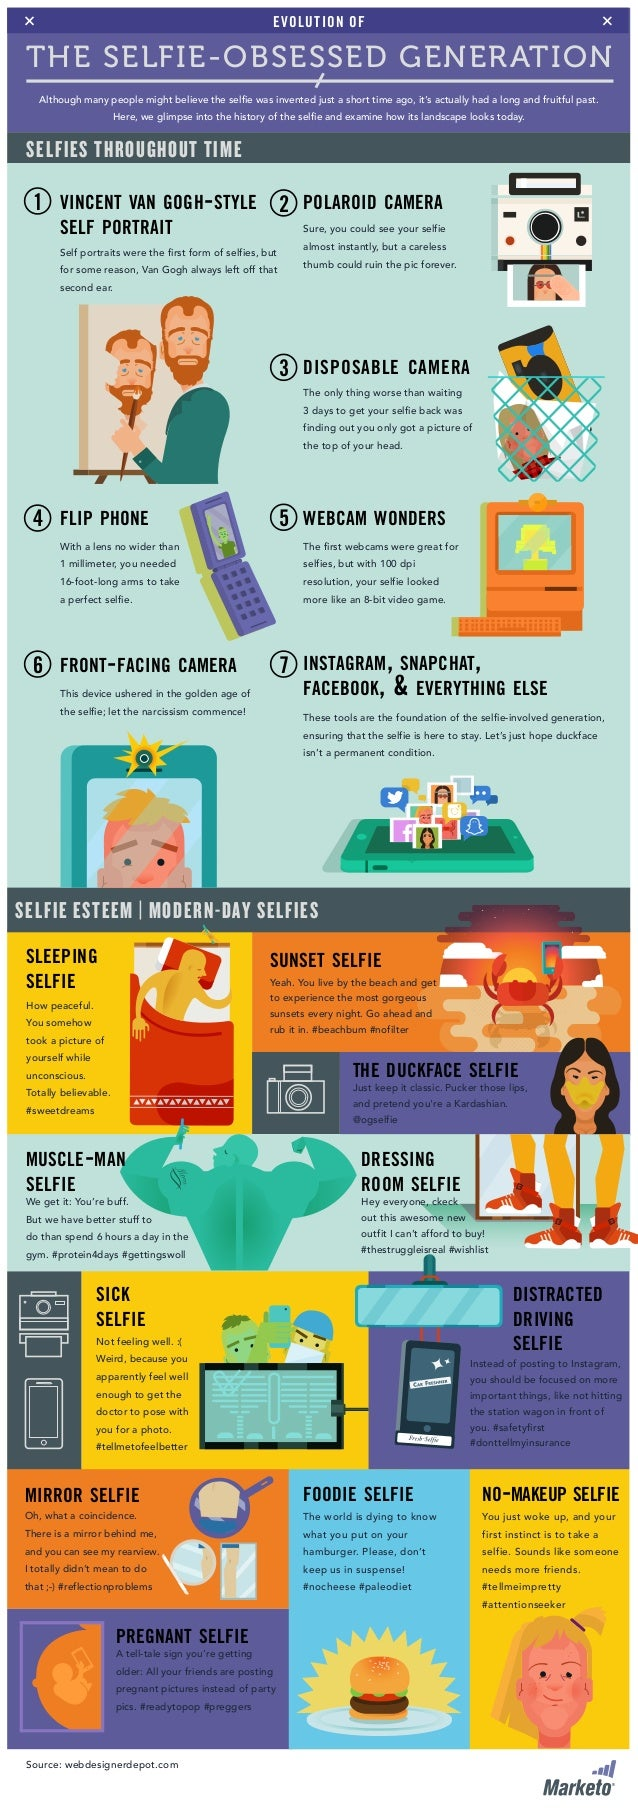 Evolution of the Selfie-Obsessed Generation